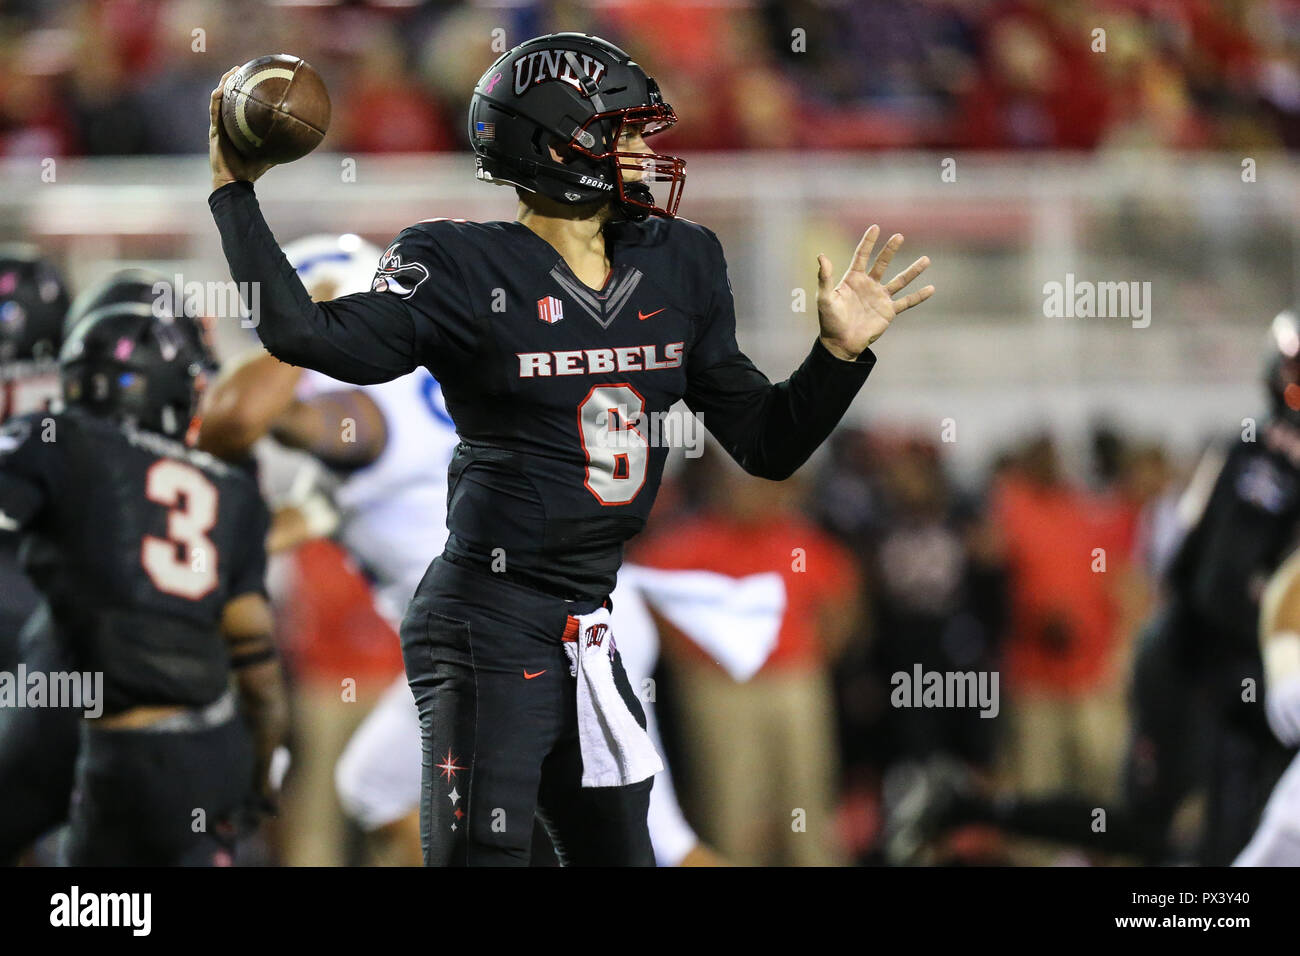 buy popular 54bda 9b393 October 19, 2018: UNLV Rebels quarterback Max Gilliam (6 ...